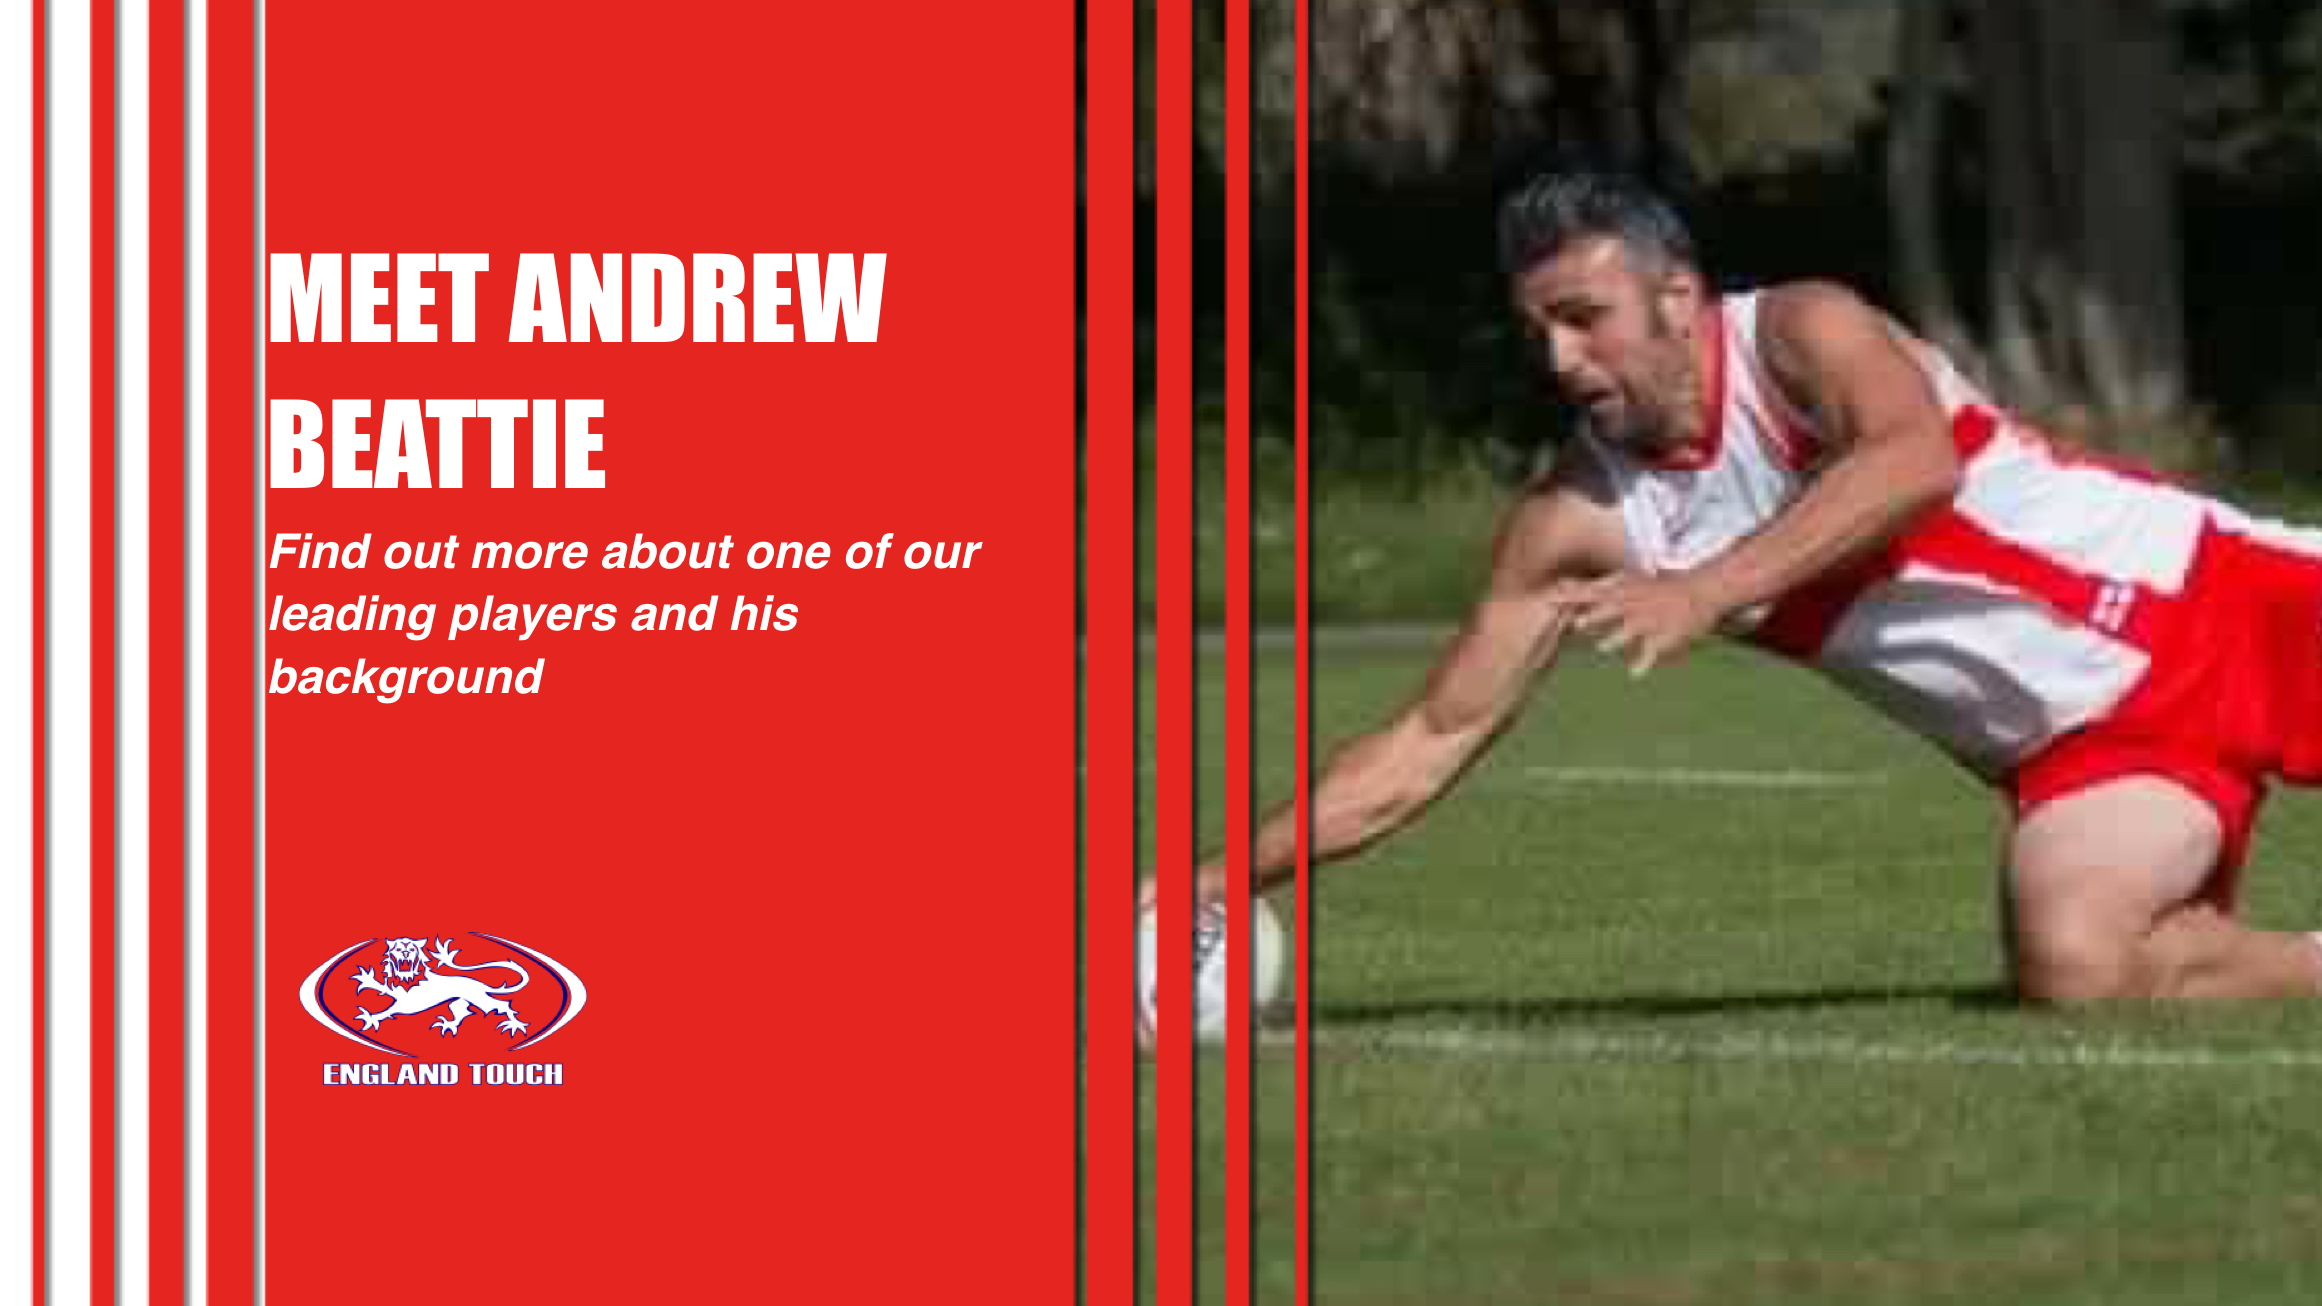 Meet Andrew Beattie